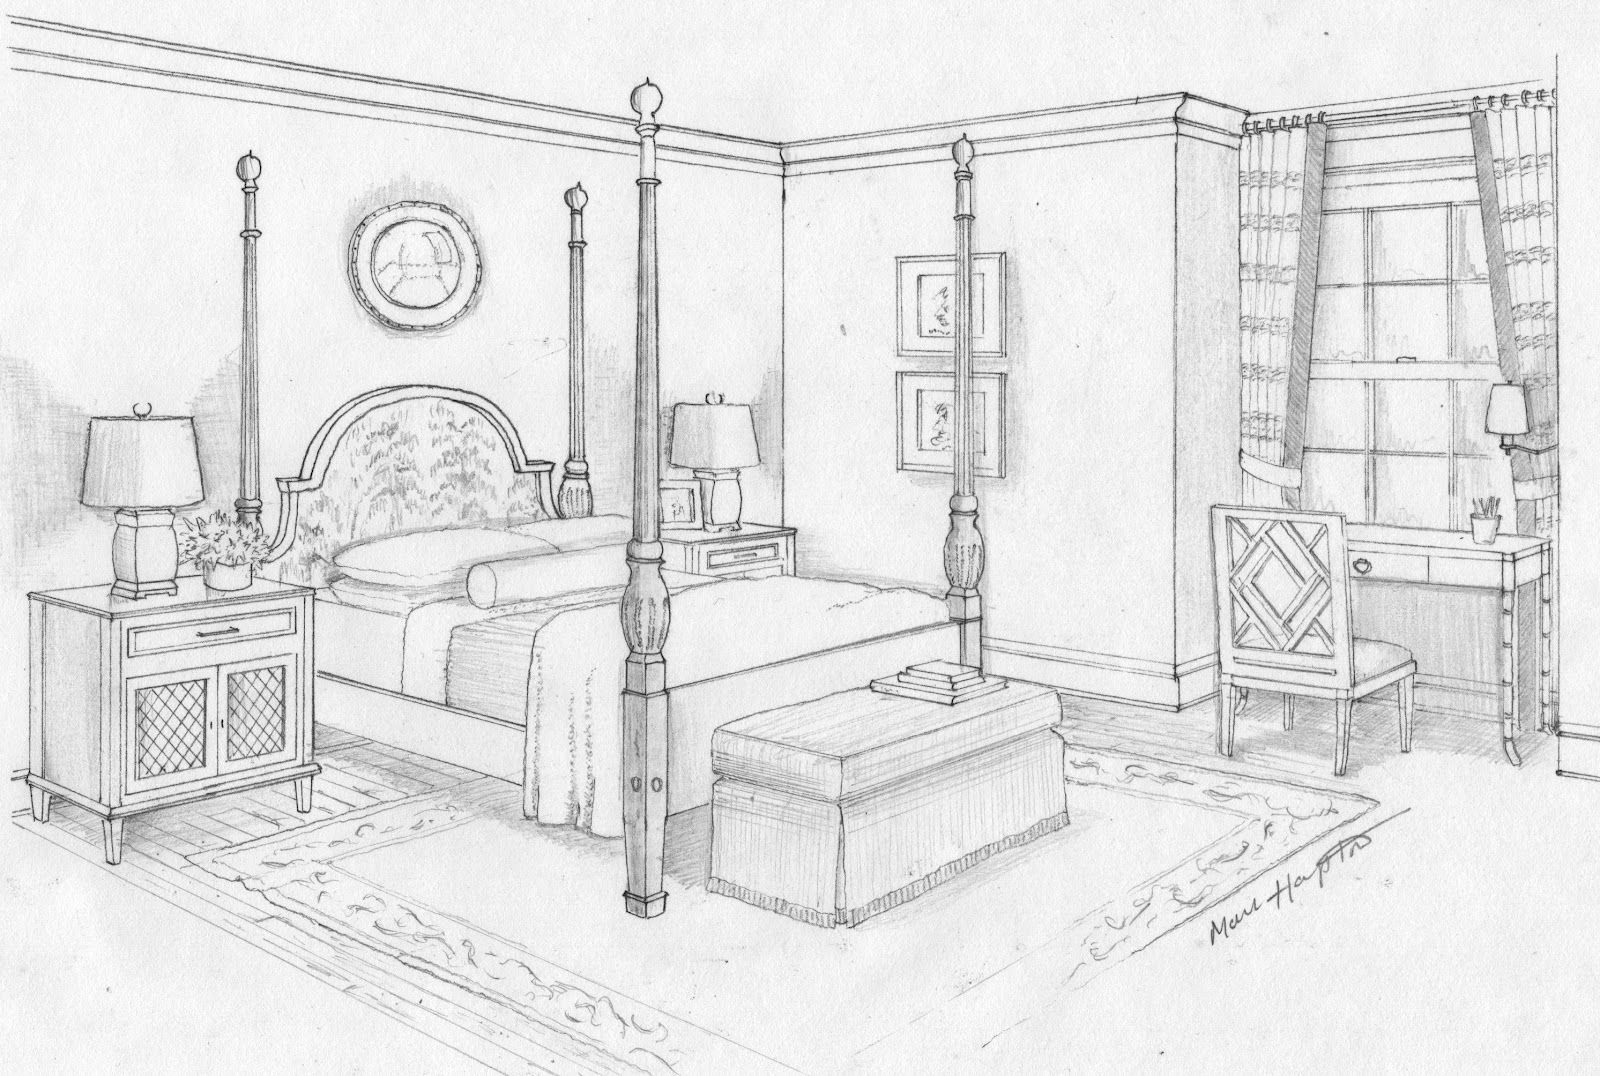 Dream Bedroom Sketch